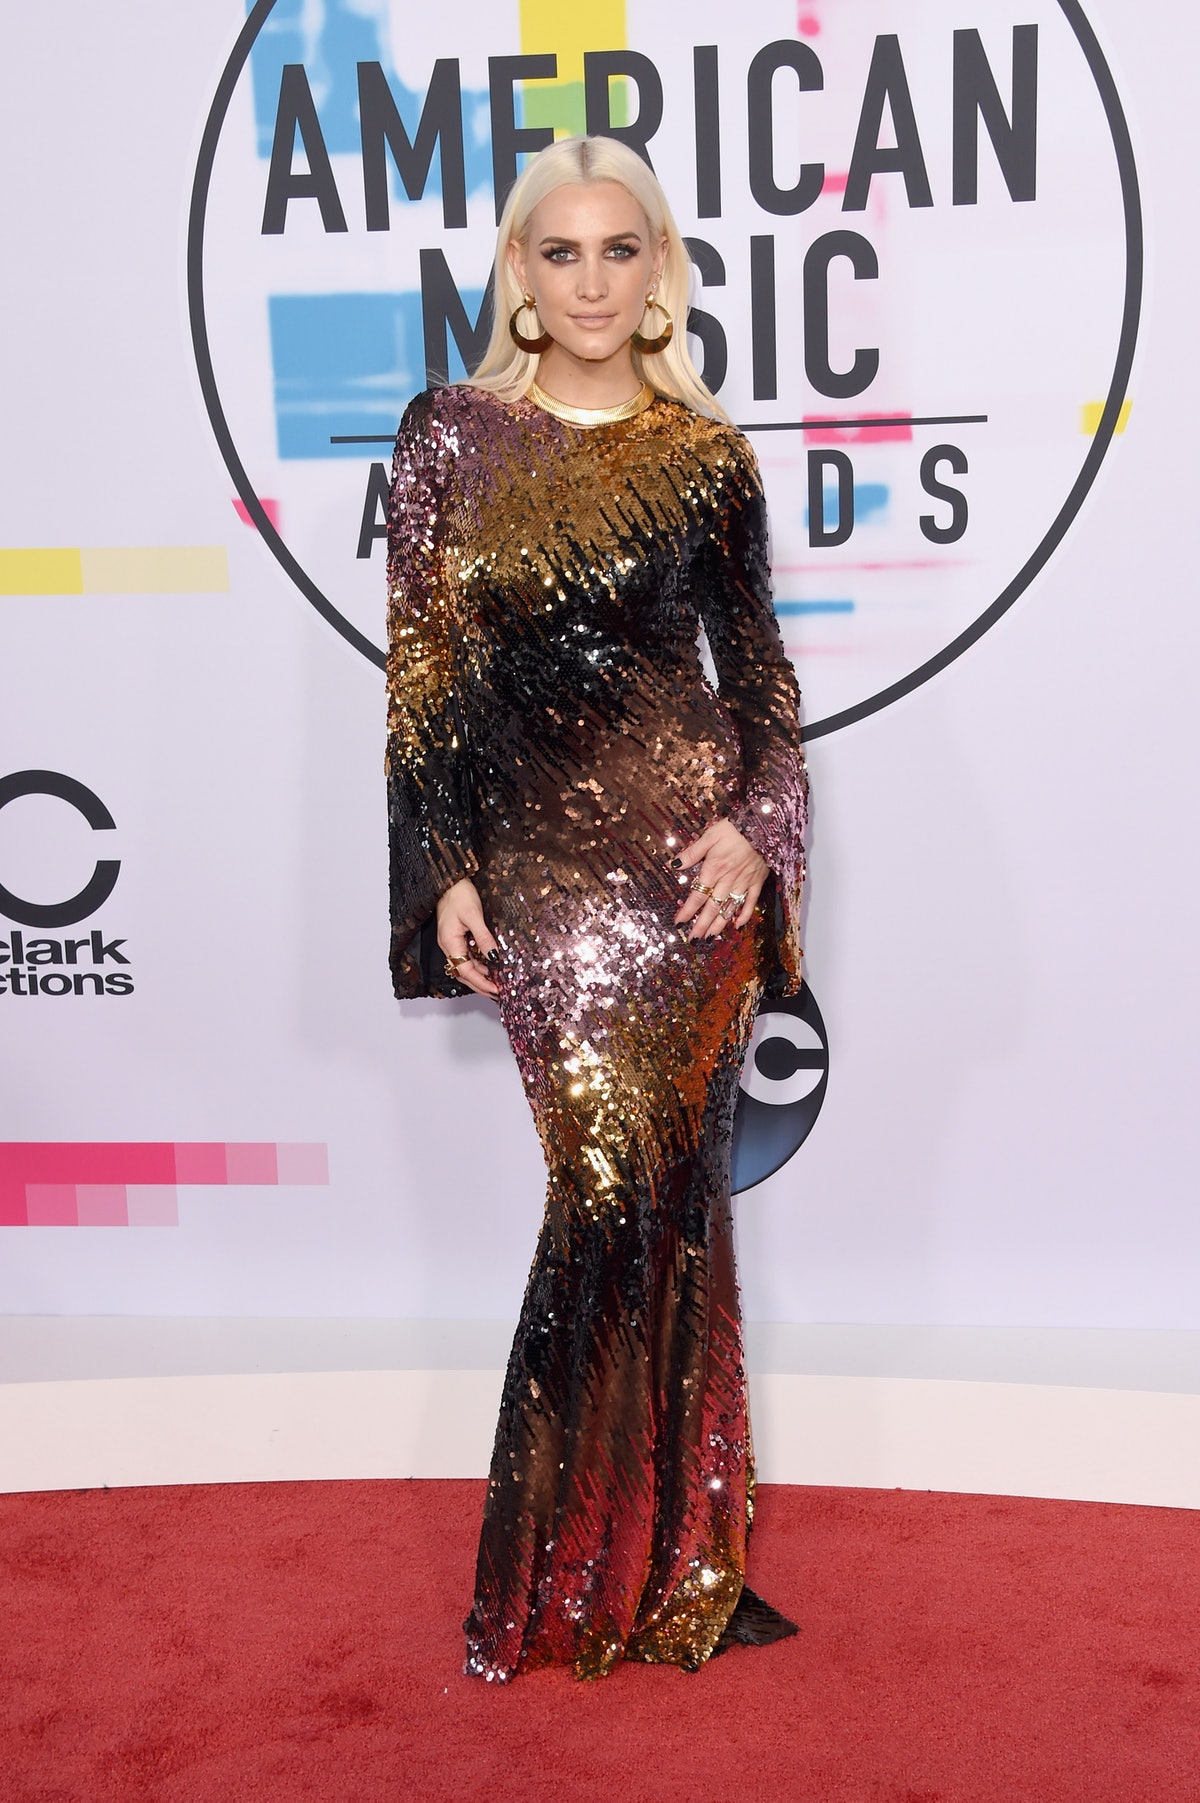 2017 American Music Awards - Arrivals